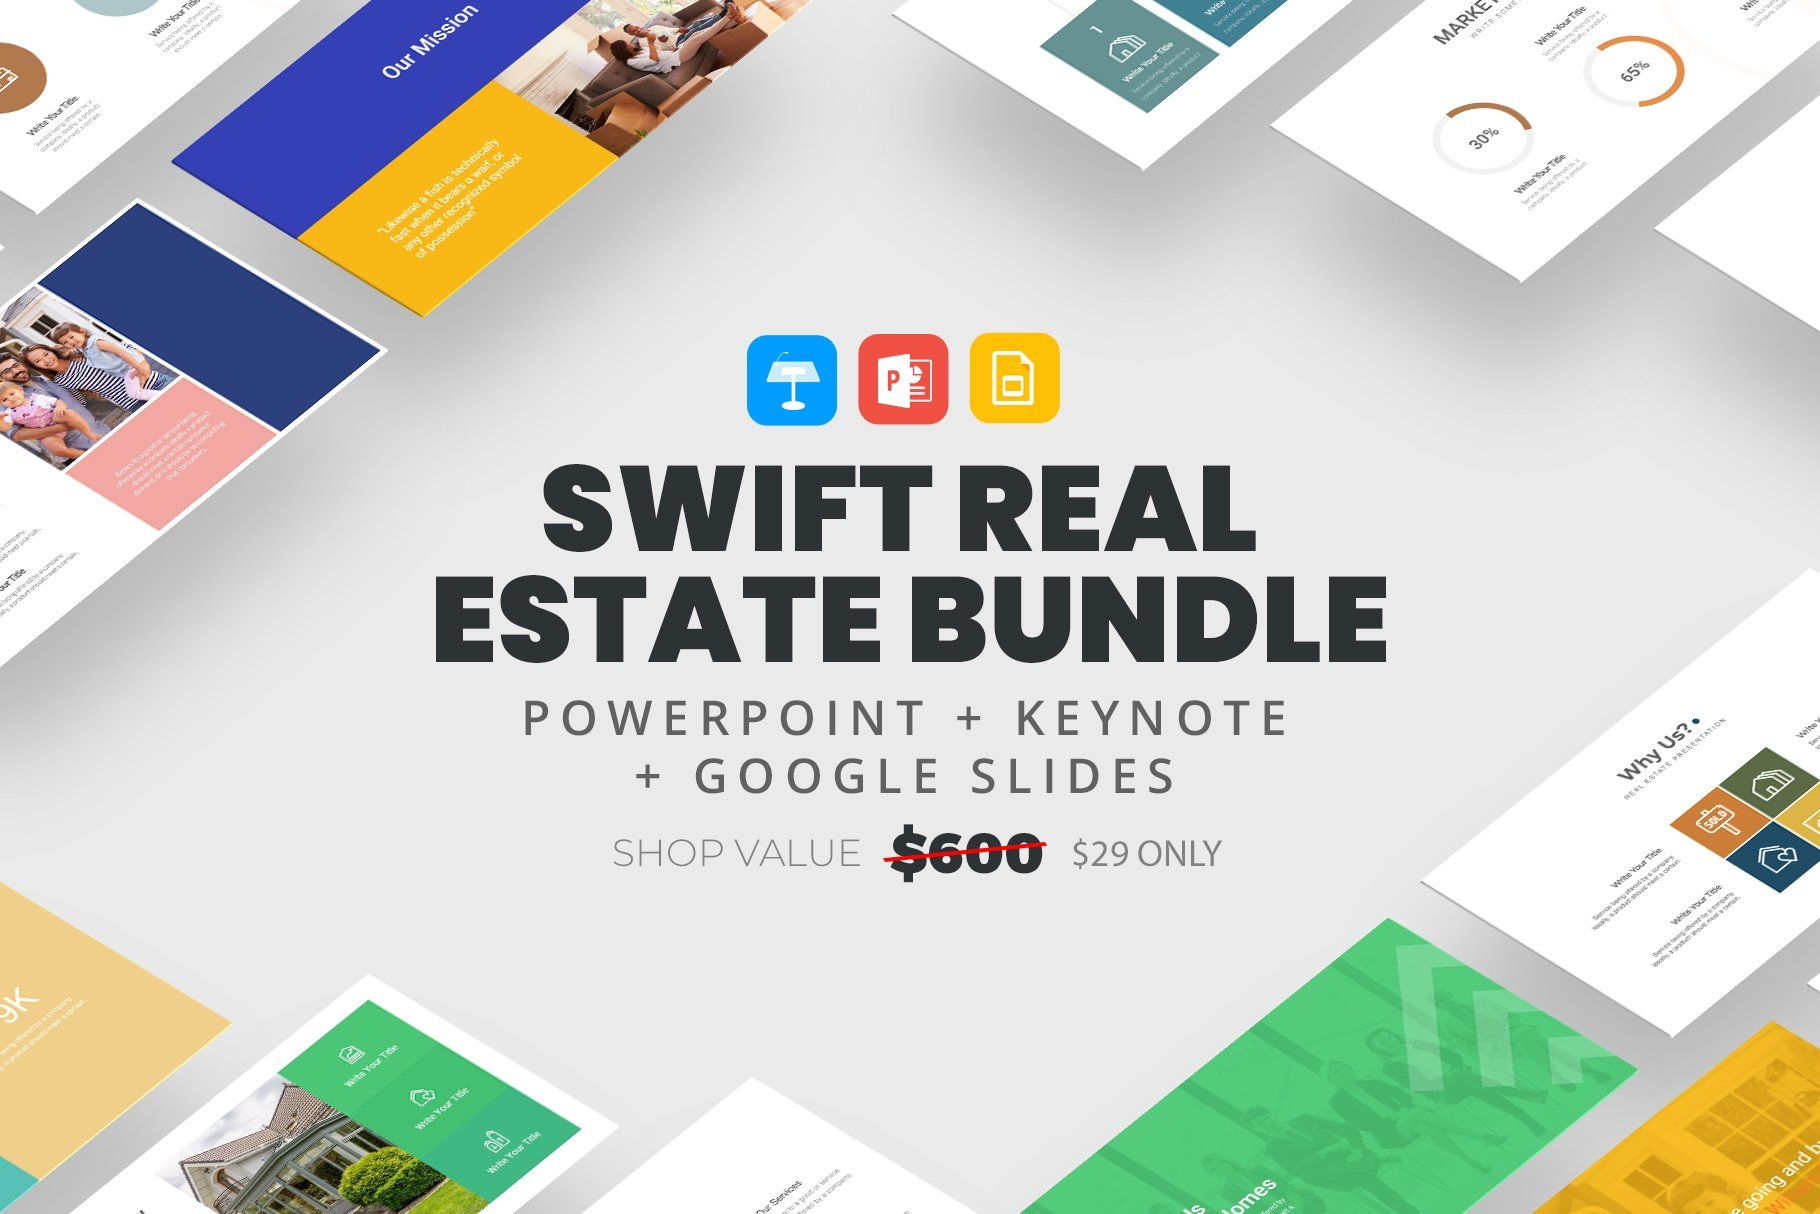 SWIFT Real Estate Bundle by slidequest on Creative Market